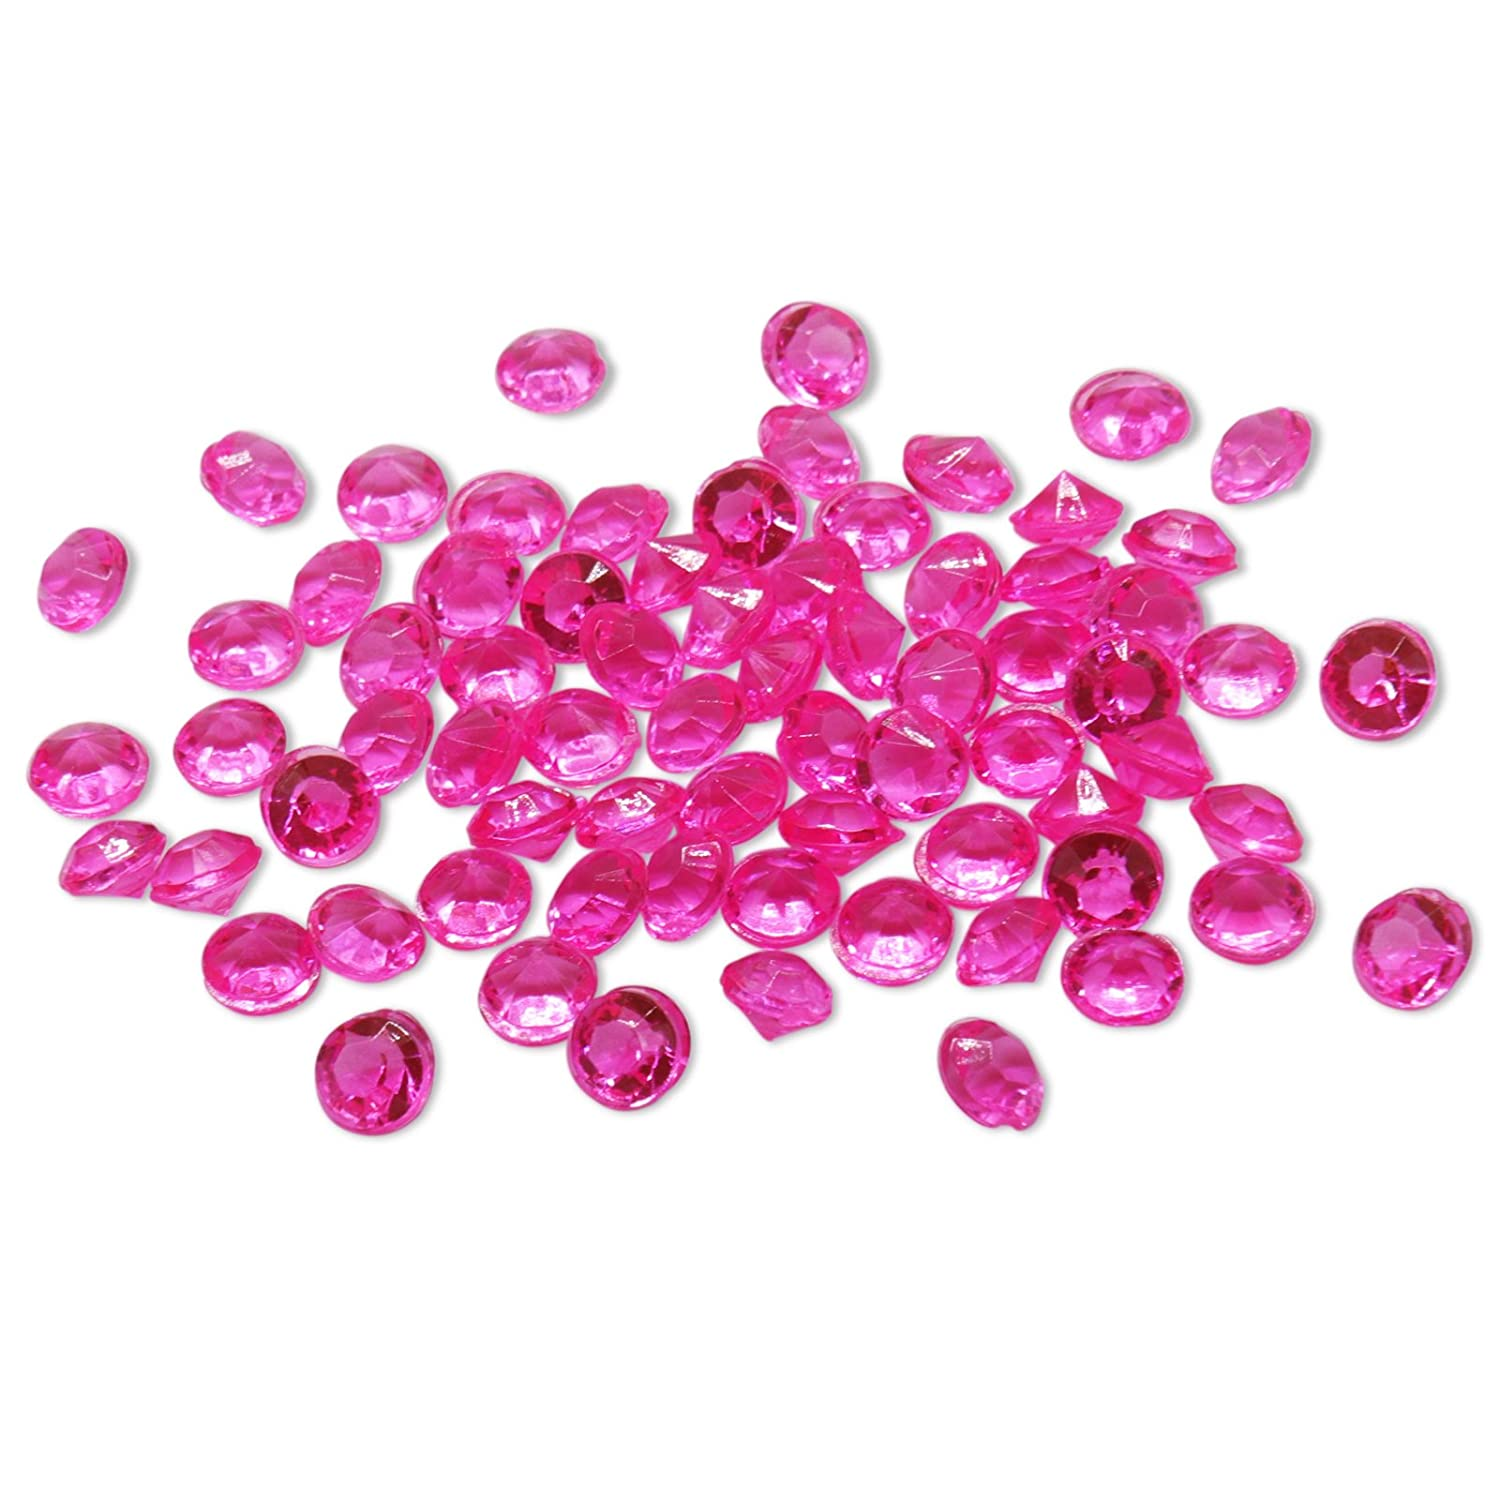 BITFLY 4.2mm 1/3 Carat Pack of 10000pcs Acrylic Crystal Diamond For Vase Fillers, Party Table Scatter, Wedding, Photography, Party Decoration, Crafts DIY Project BIT.FLY D11